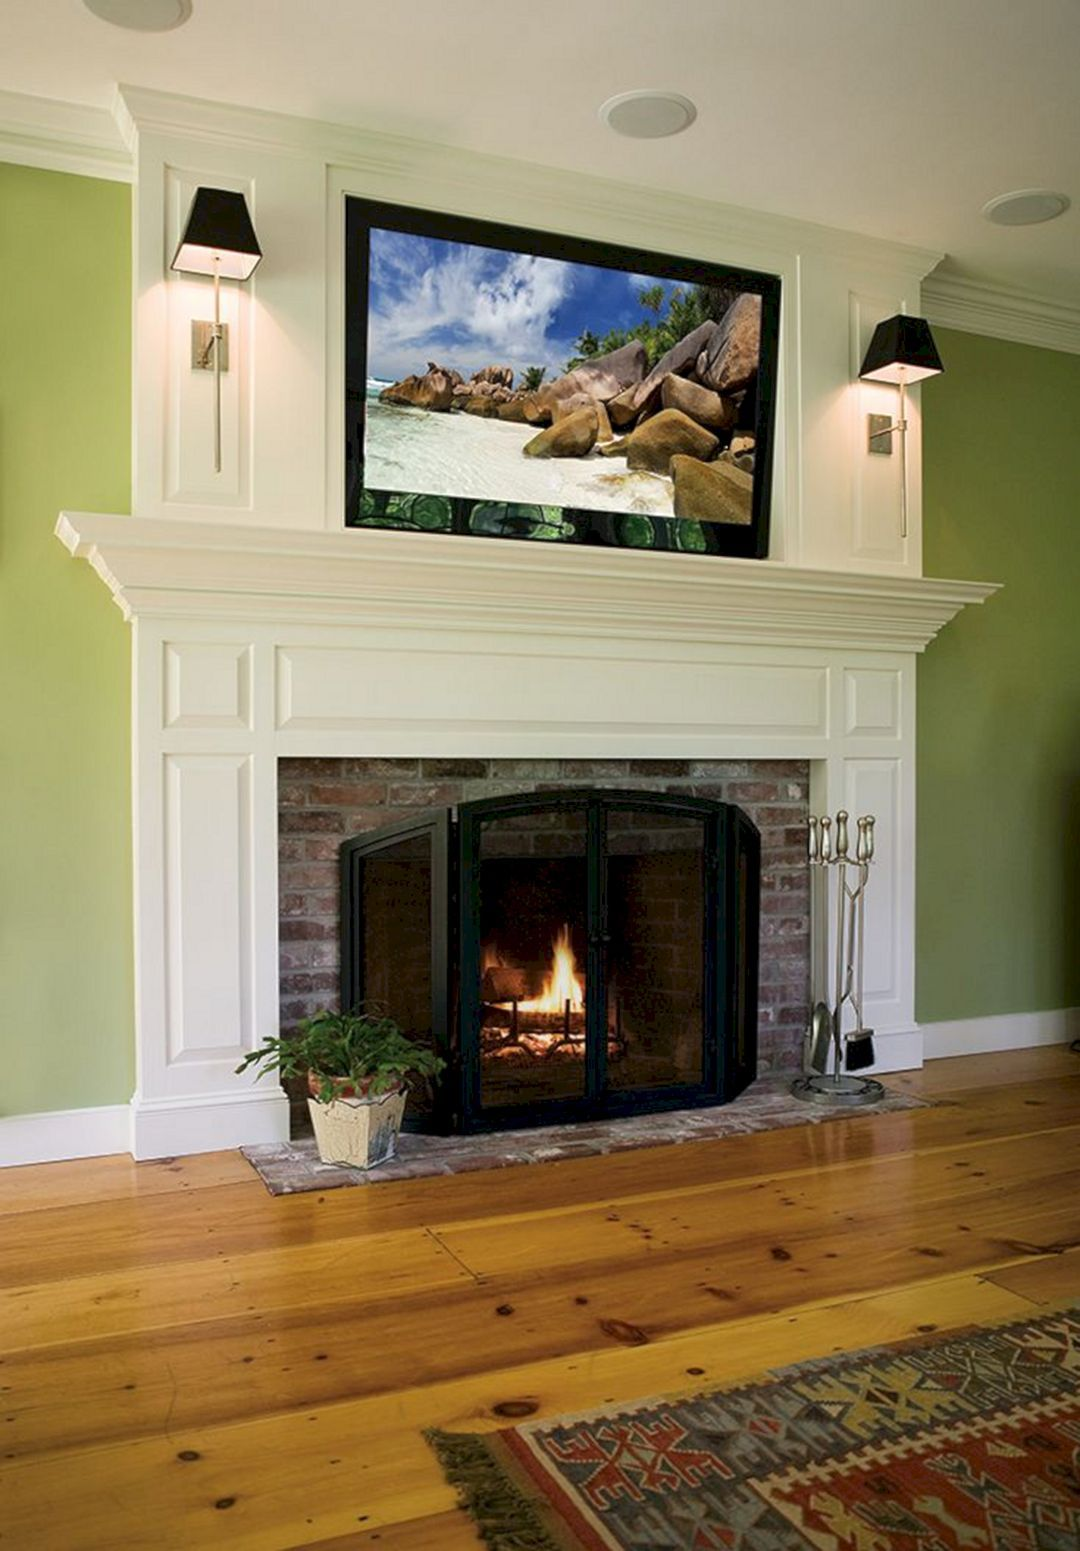 10 Extraordinary Living Room Fireplace Design You Must Have In